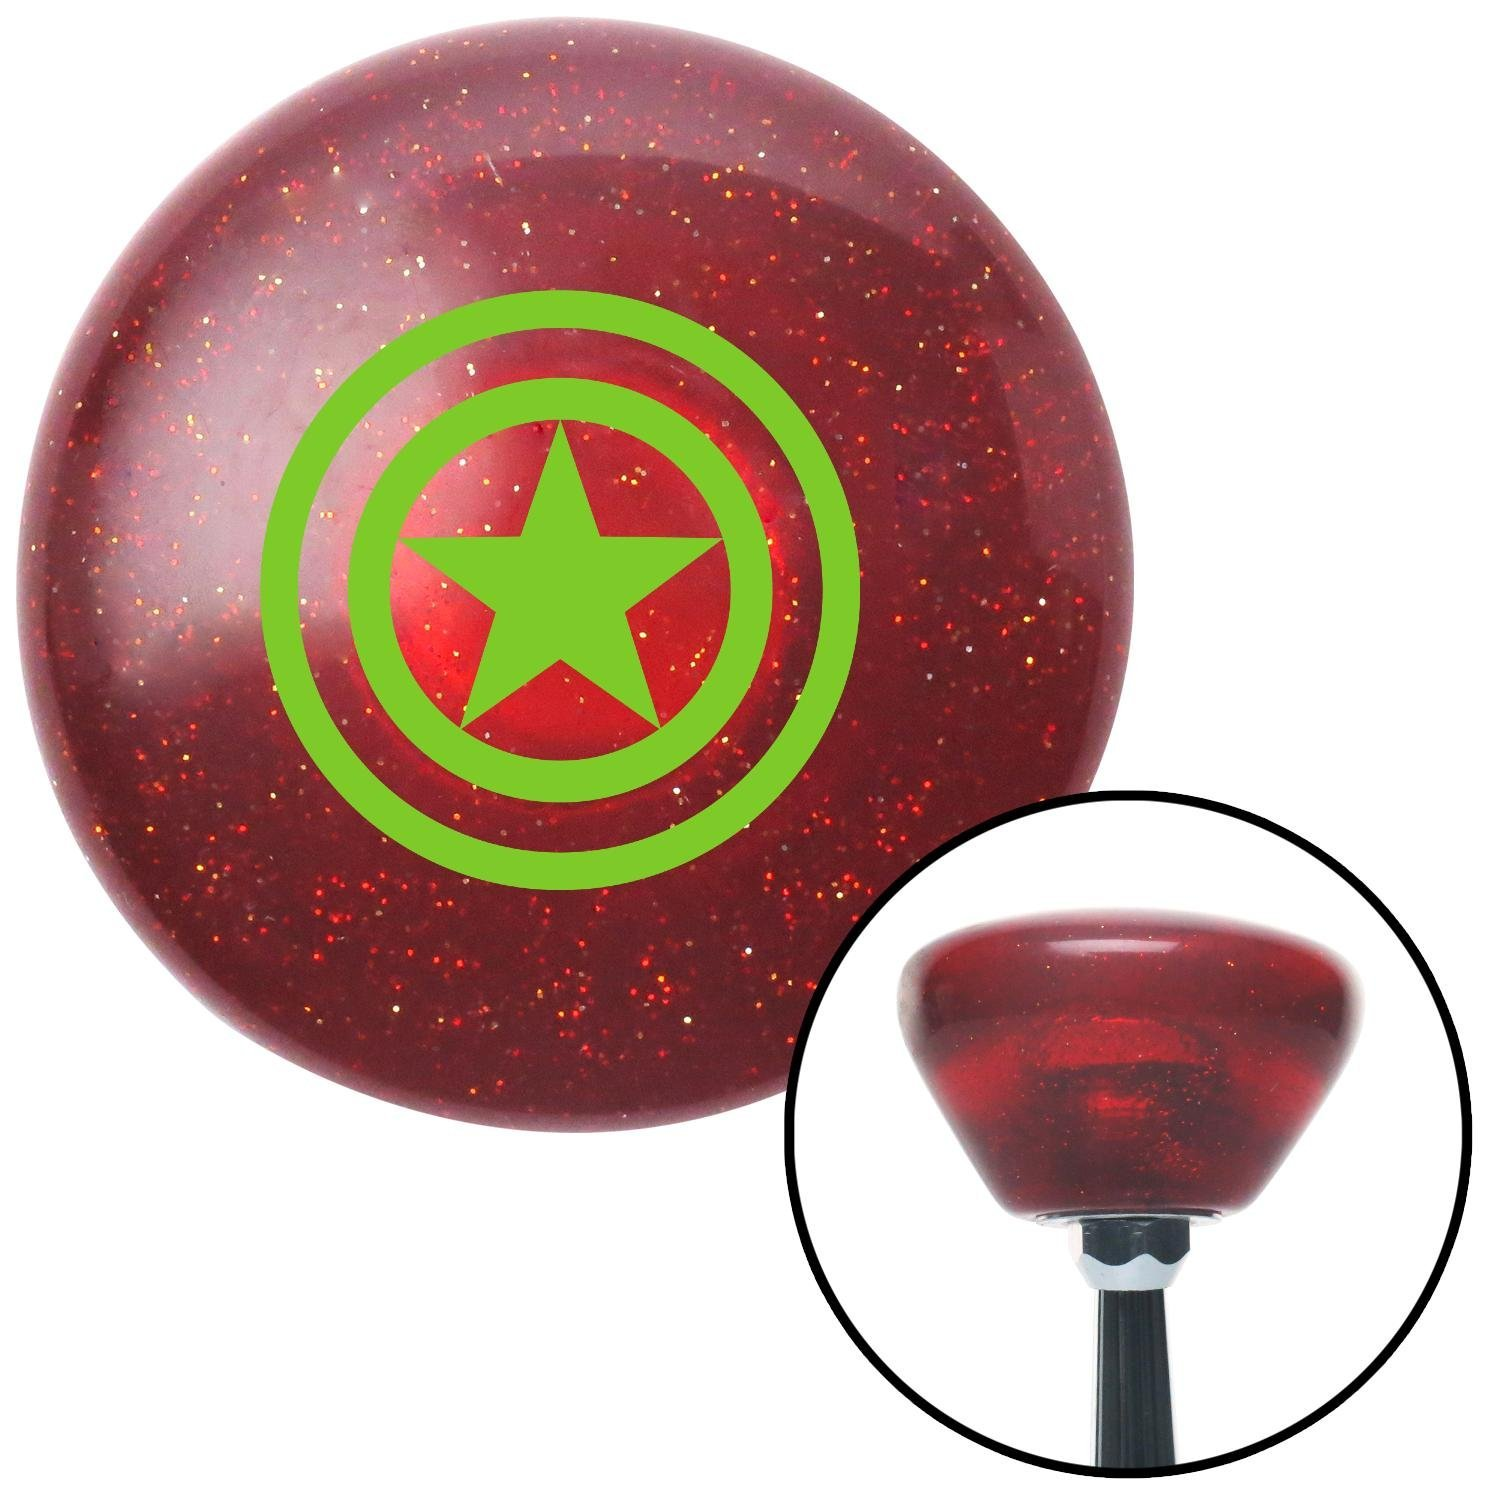 American Shifter 195877 Red Retro Metal Flake Shift Knob with M16 x 1.5 Insert Green Outlined Star